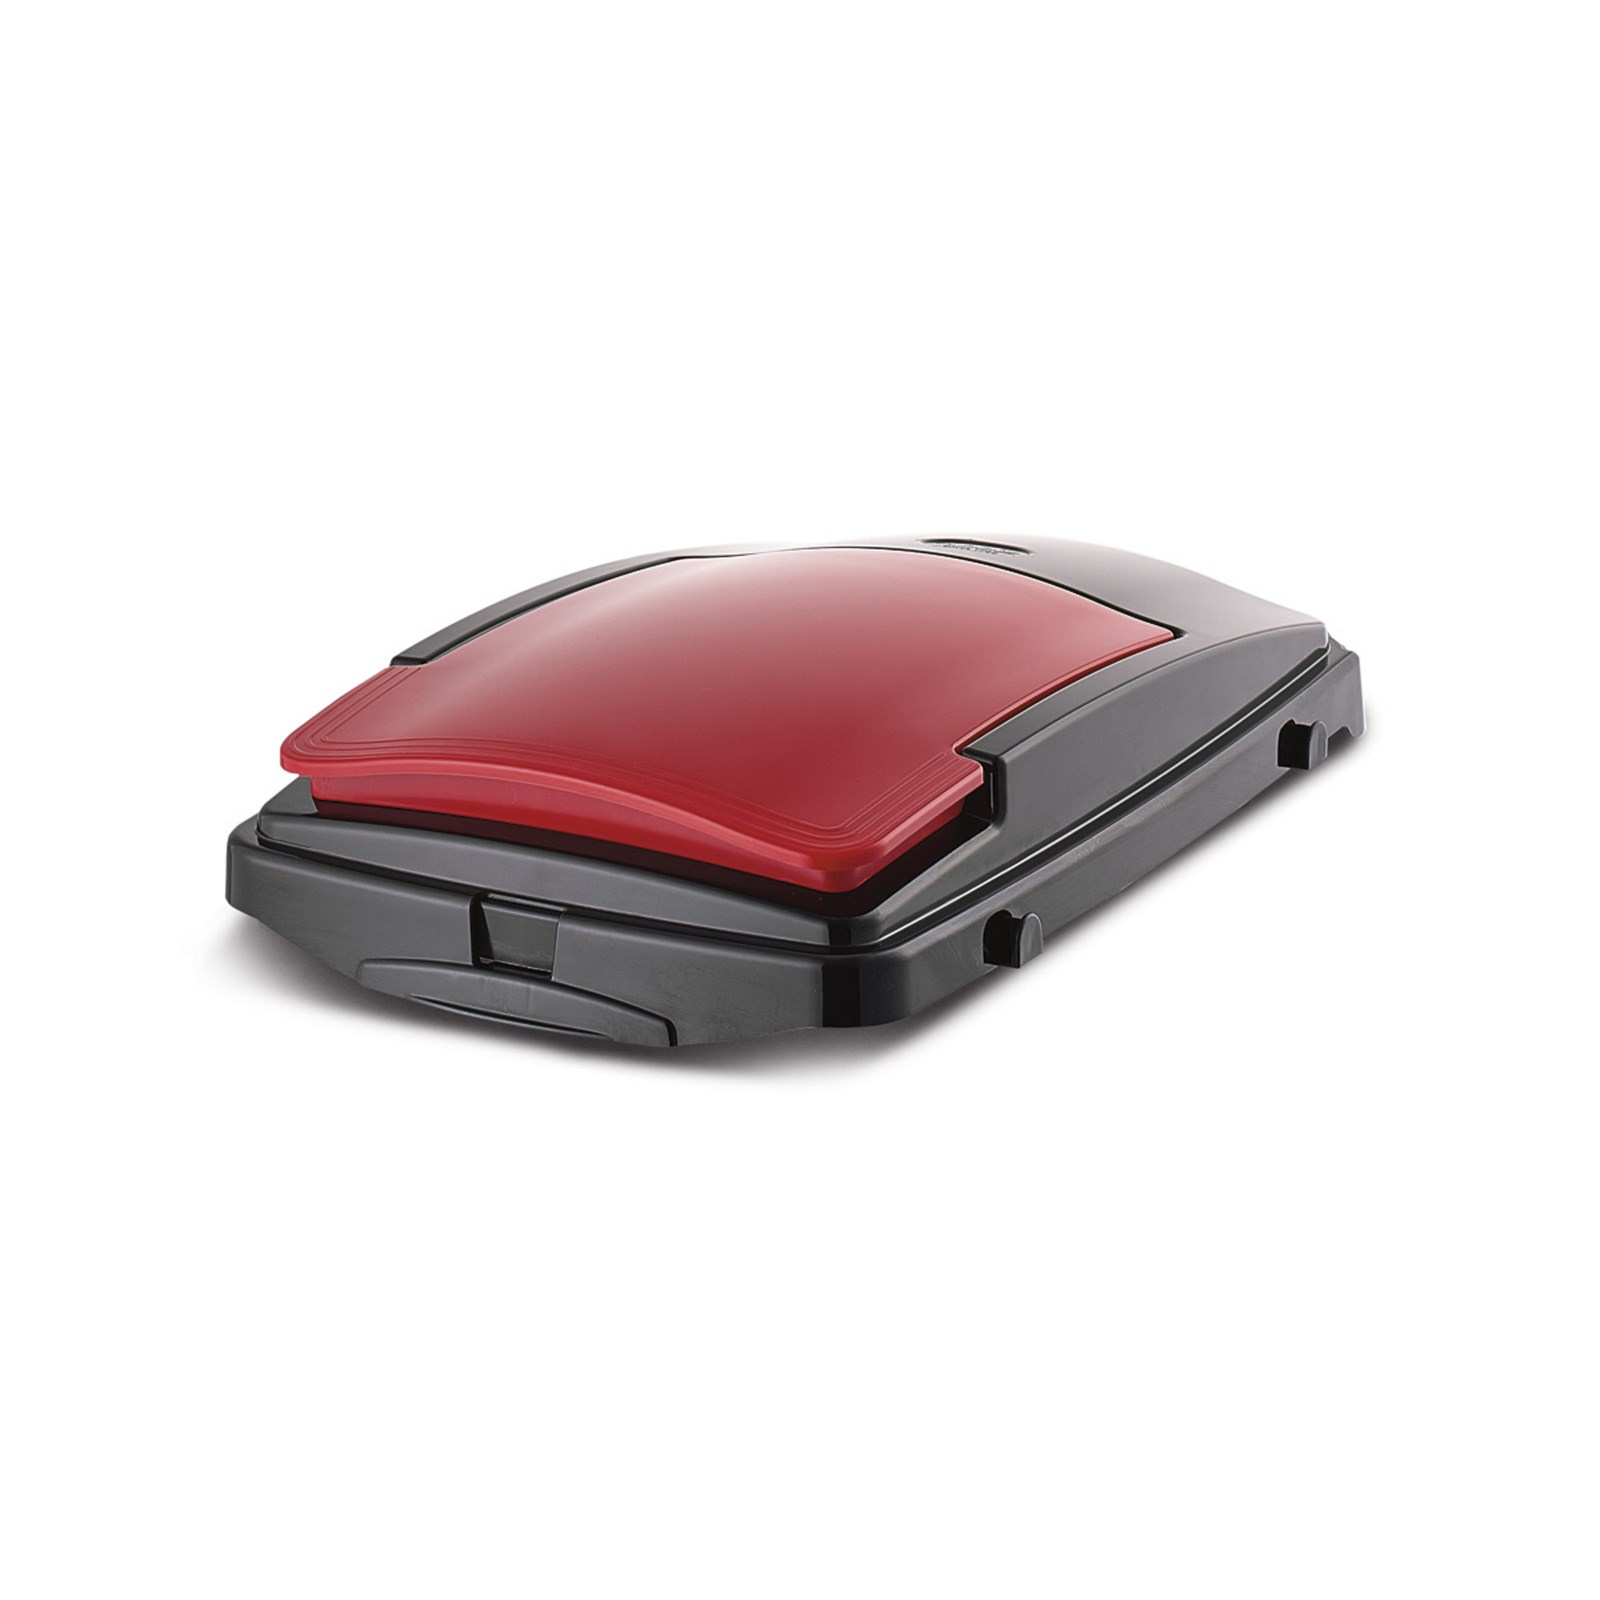 Lid for Recycling Bin - Red Flap